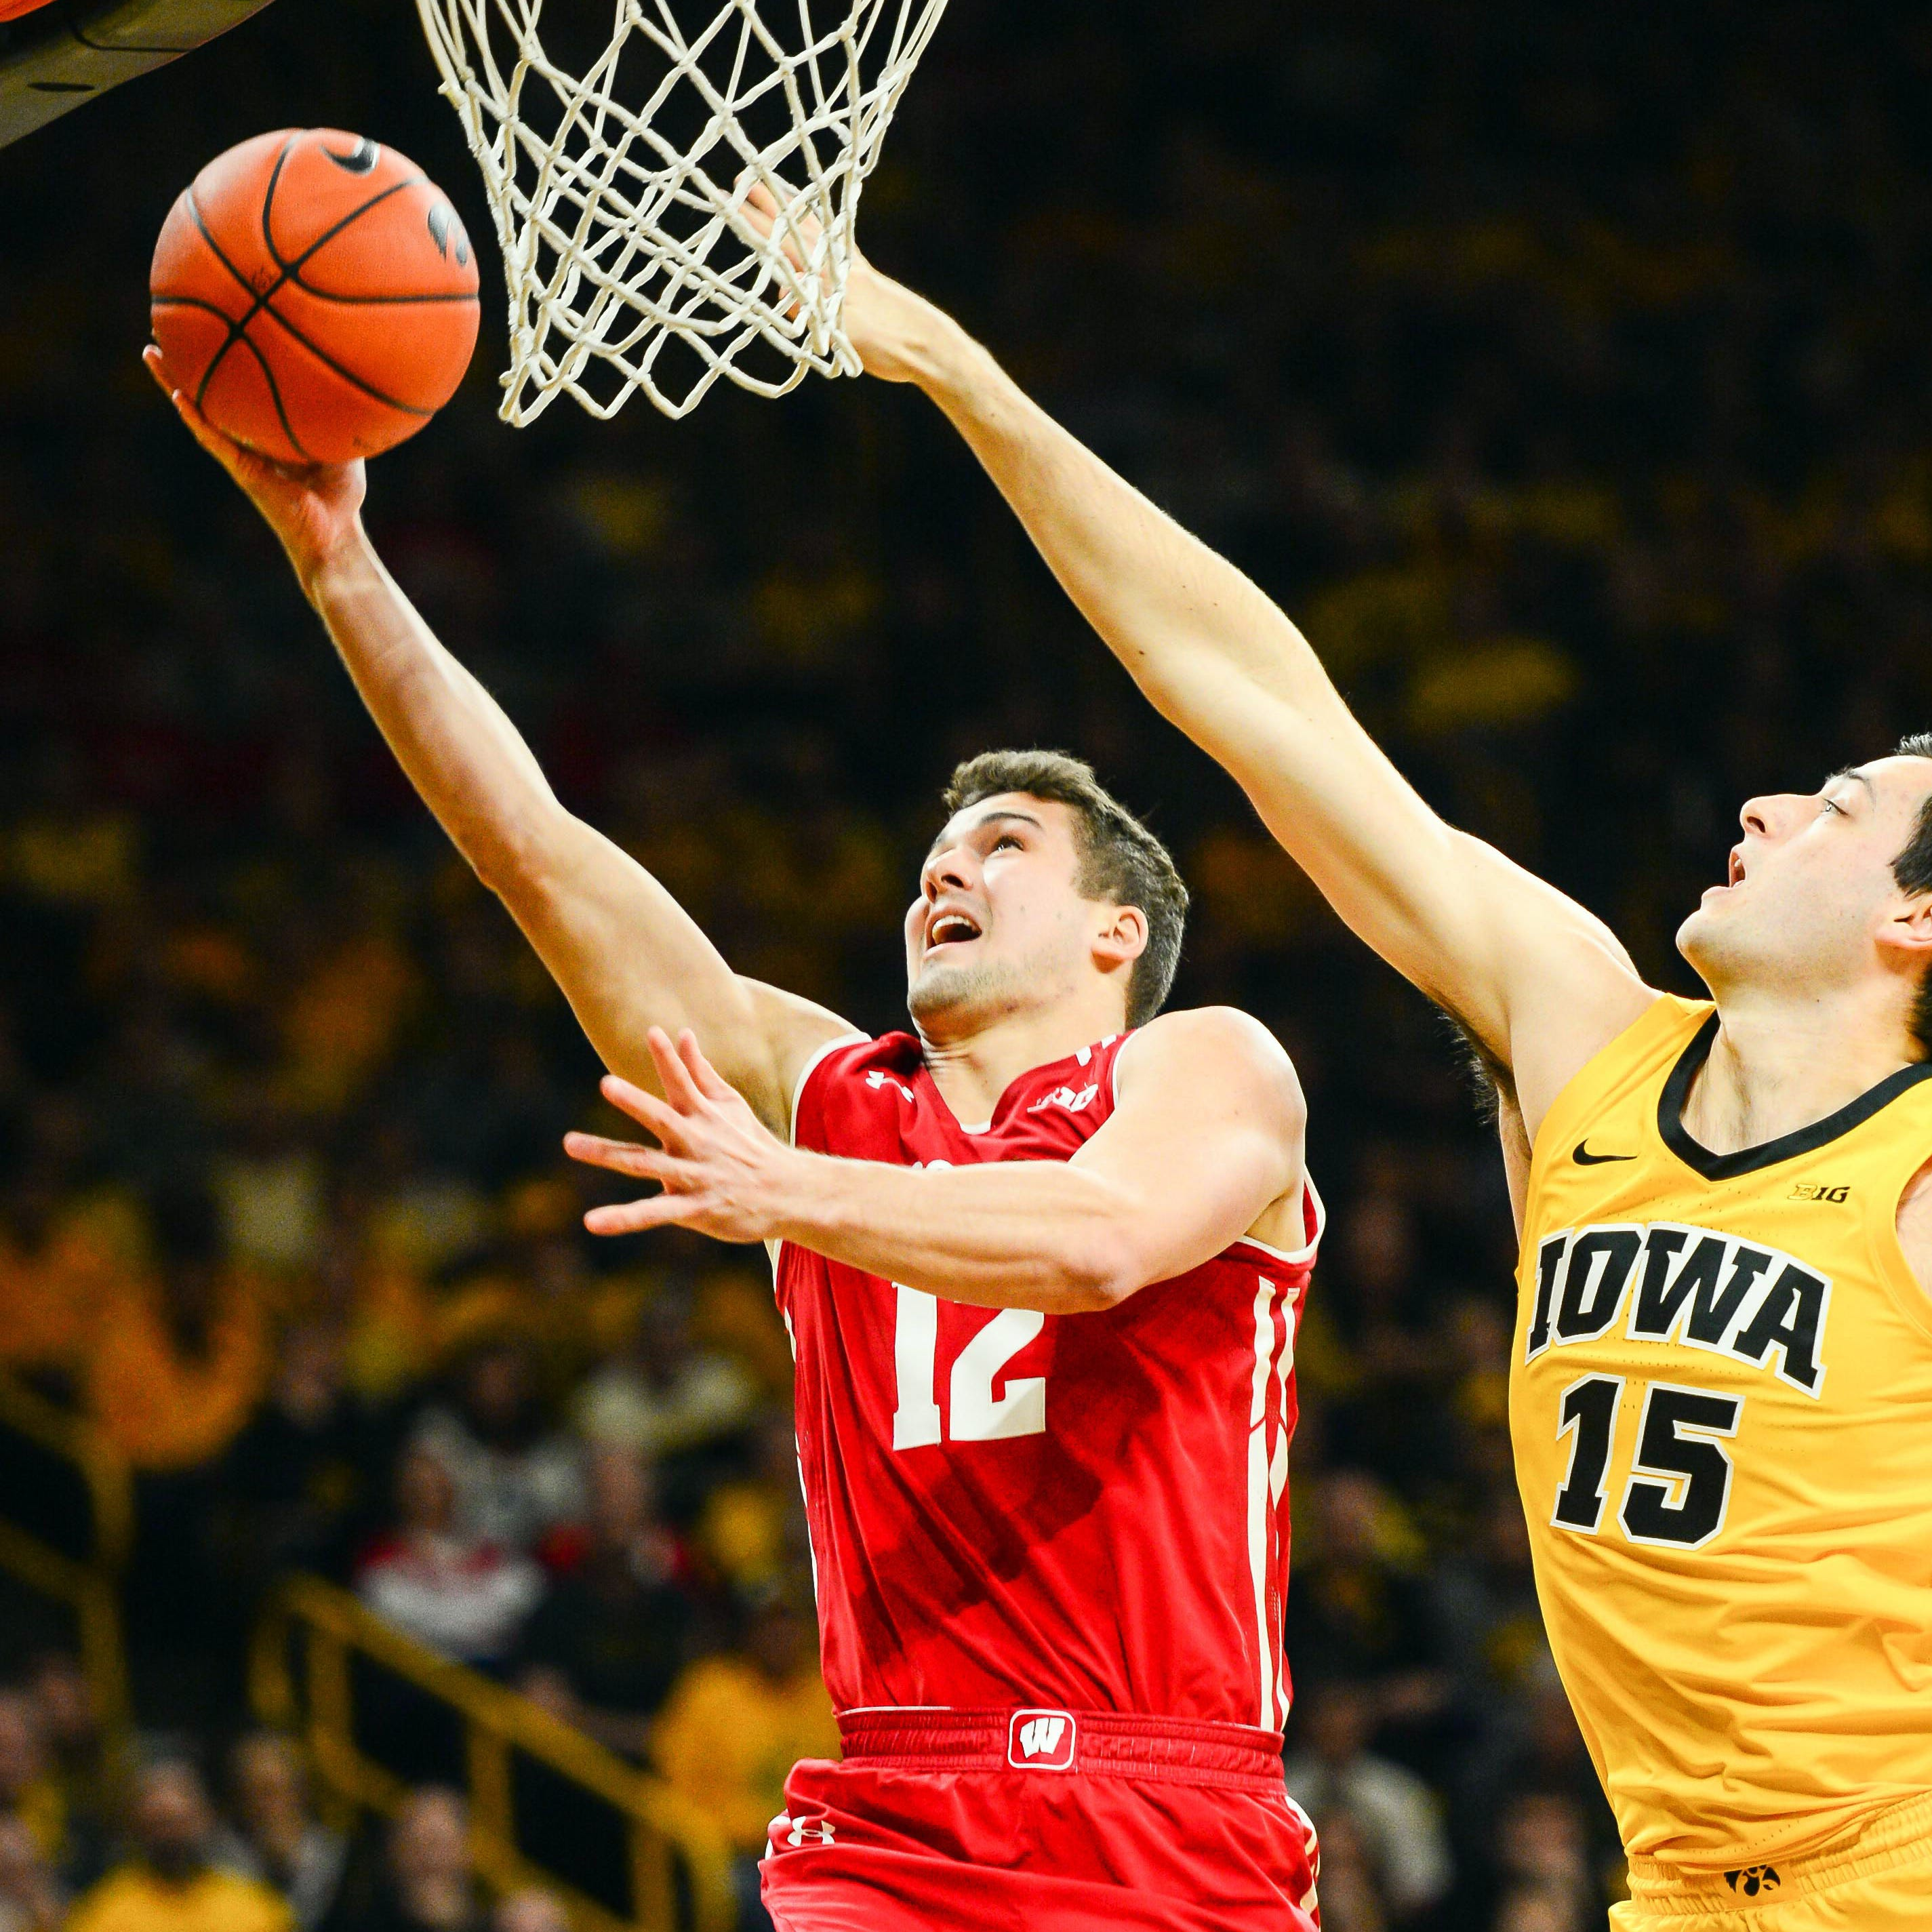 He came back from one significant injury. Now Wisconsin's Trevor Anderson is at it again.